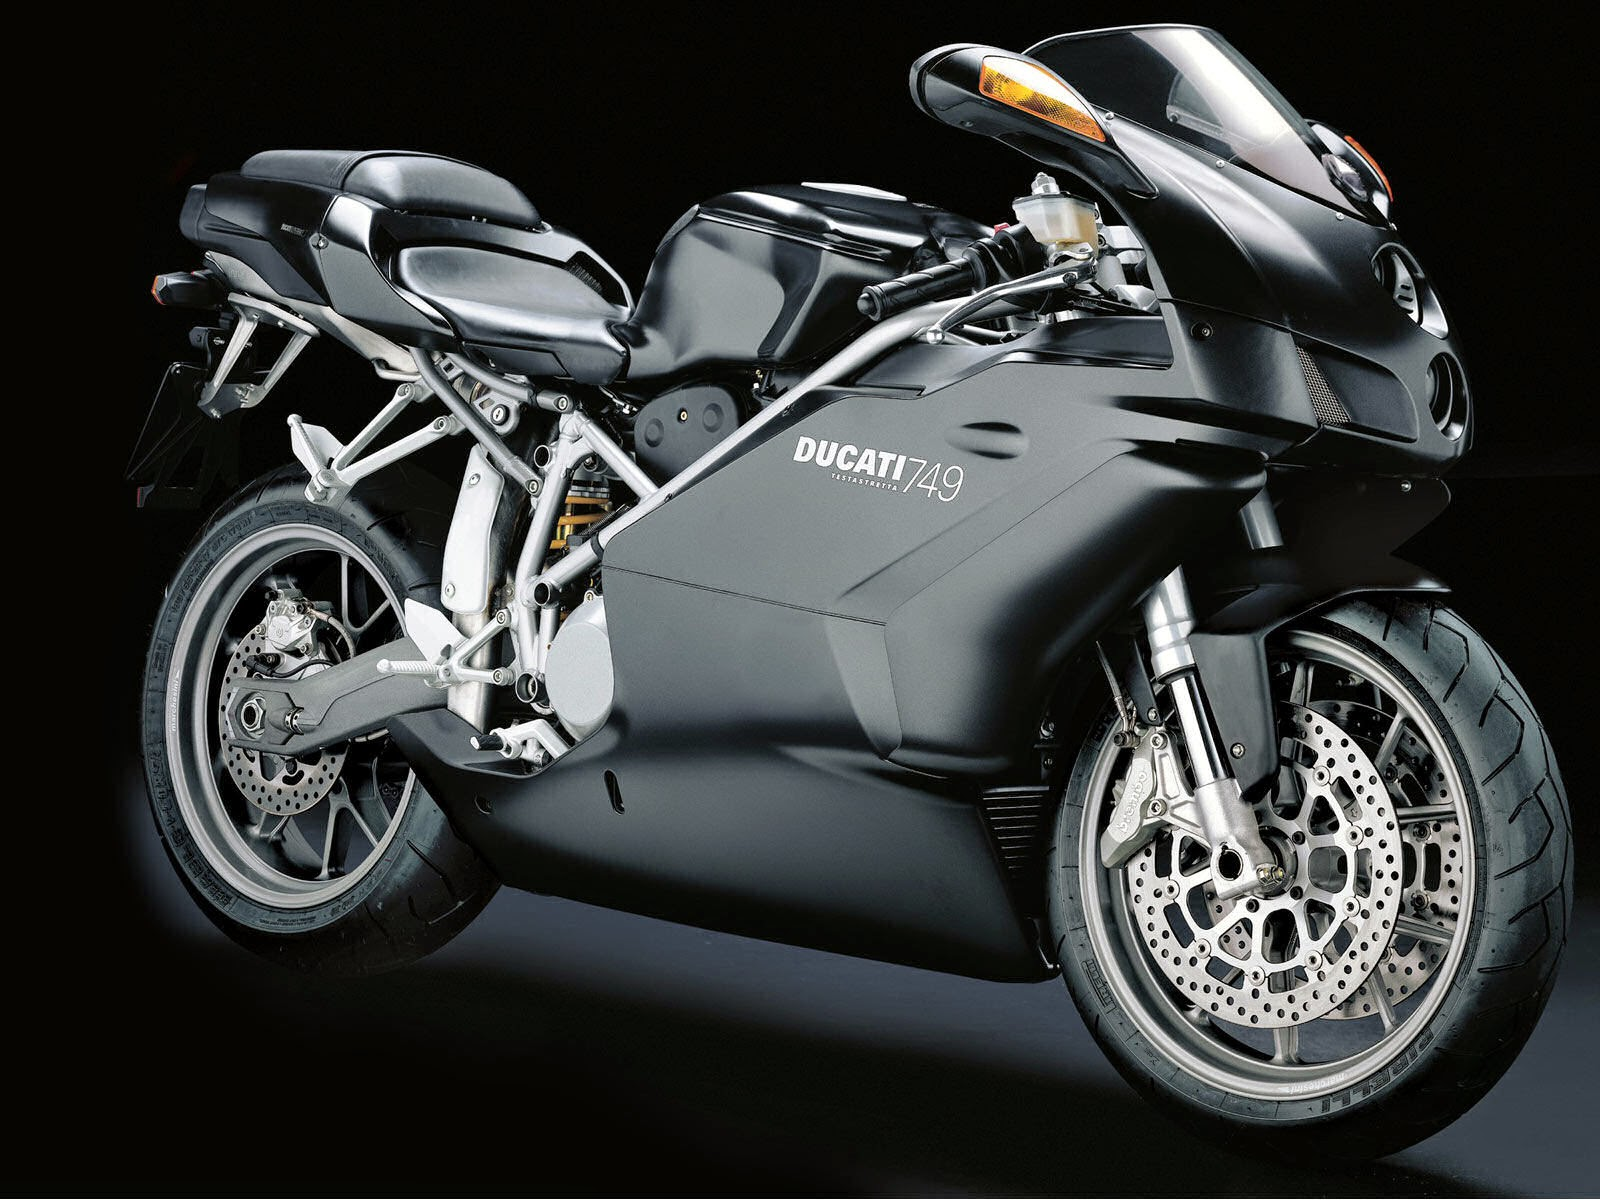 Bike Ducati Hd Photo